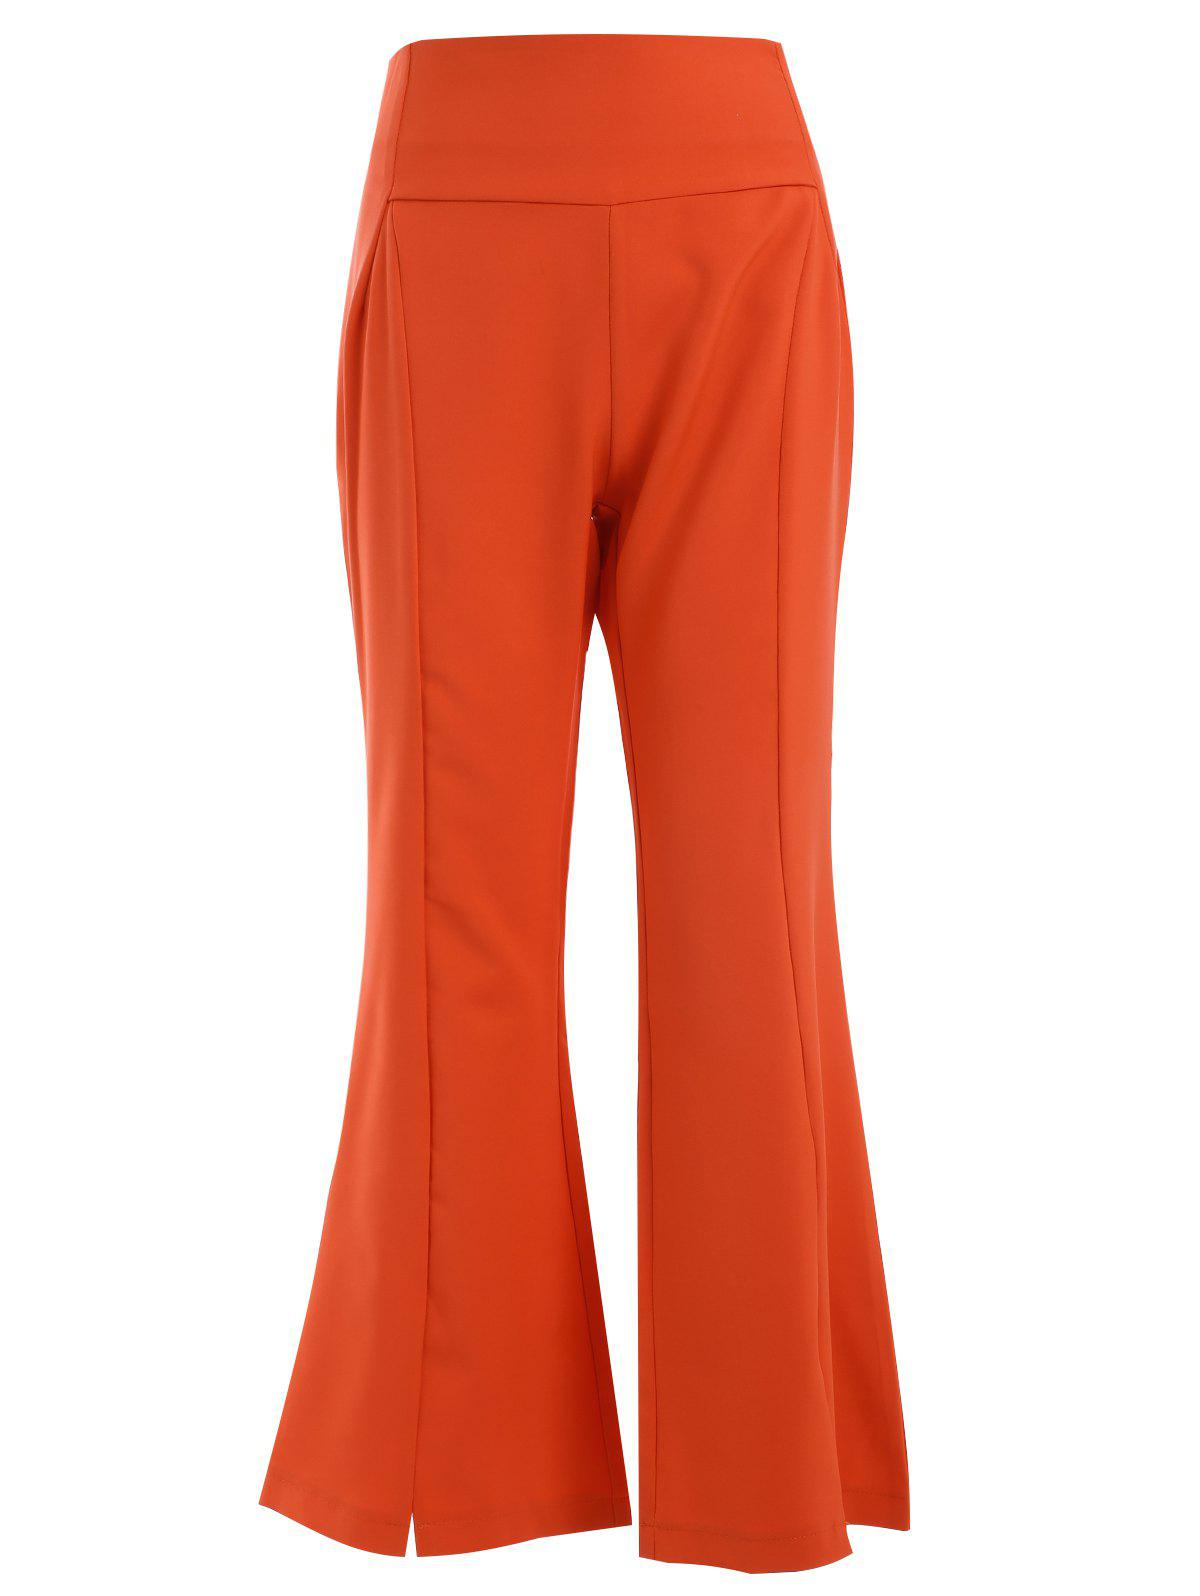 Stylish Women's Solid Color High-Waisted Boot Cut Nine Minutes of Pants - ORANGE RED M